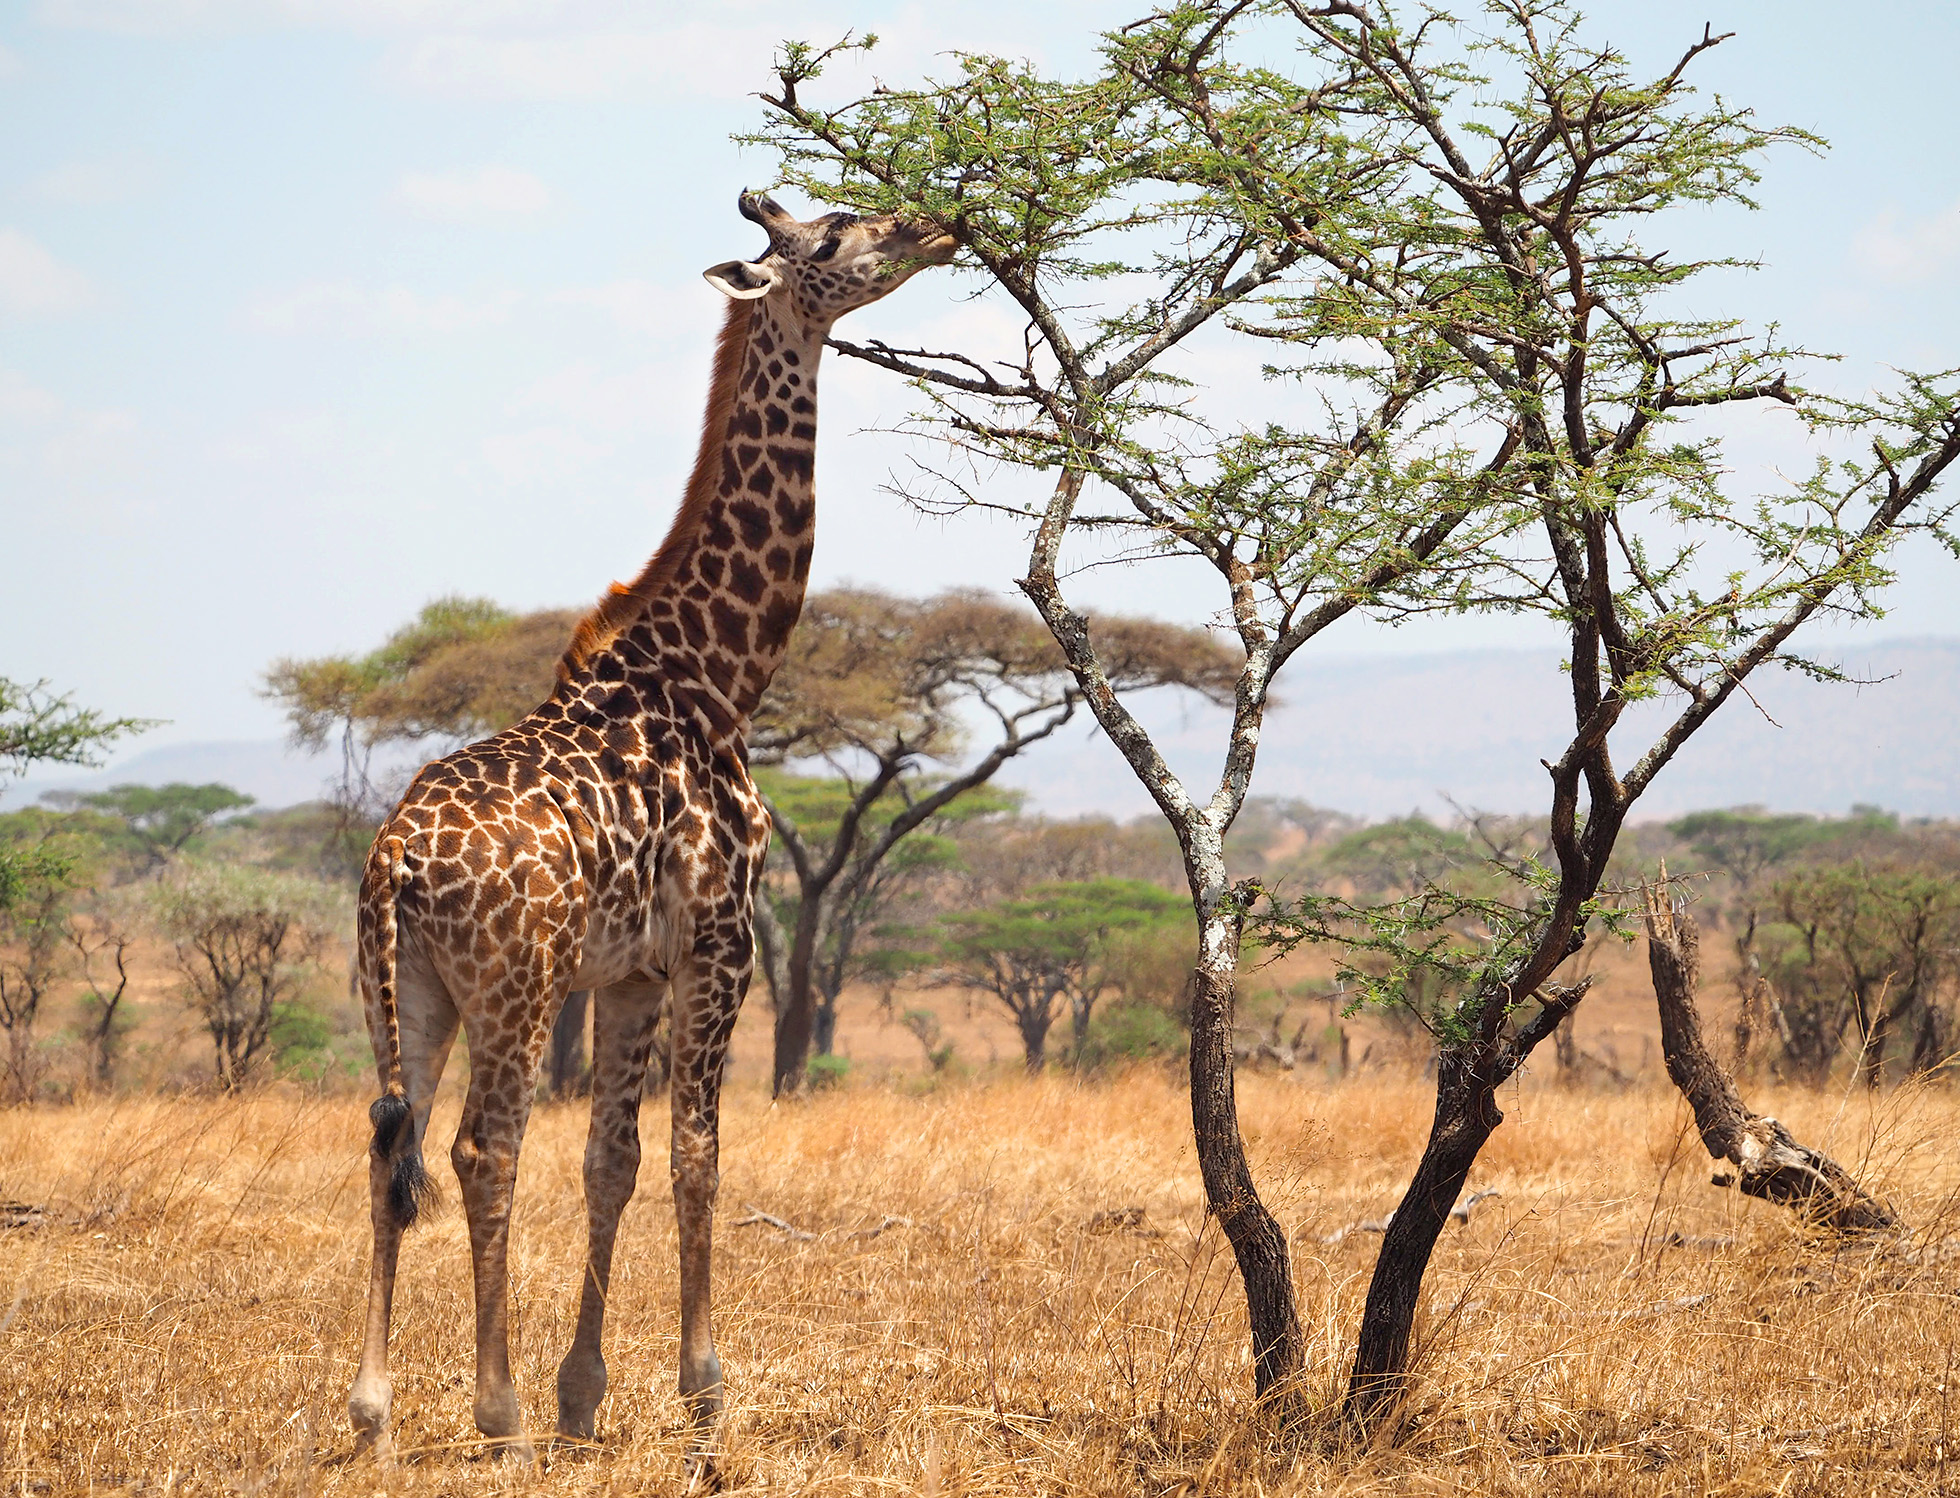 The Masai giraffe (Giraffa tippelskirchi), also called Kilimanjaro giraffe, is the largest species of giraffe and the tallest land mammal.